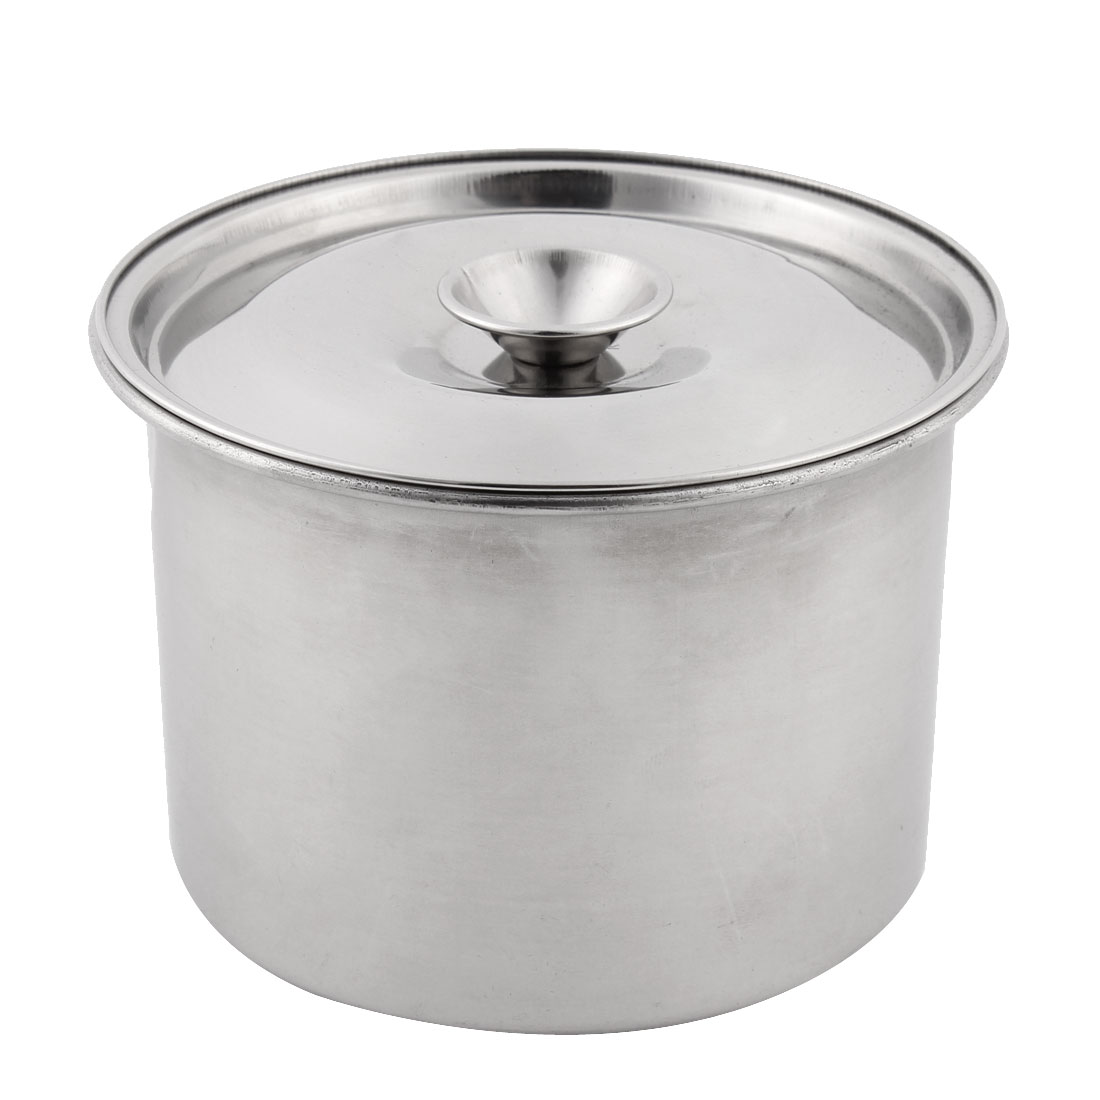 Family Kitchen Stainless Steel Food Egg Bowl Silver Tone 12cm Diameter